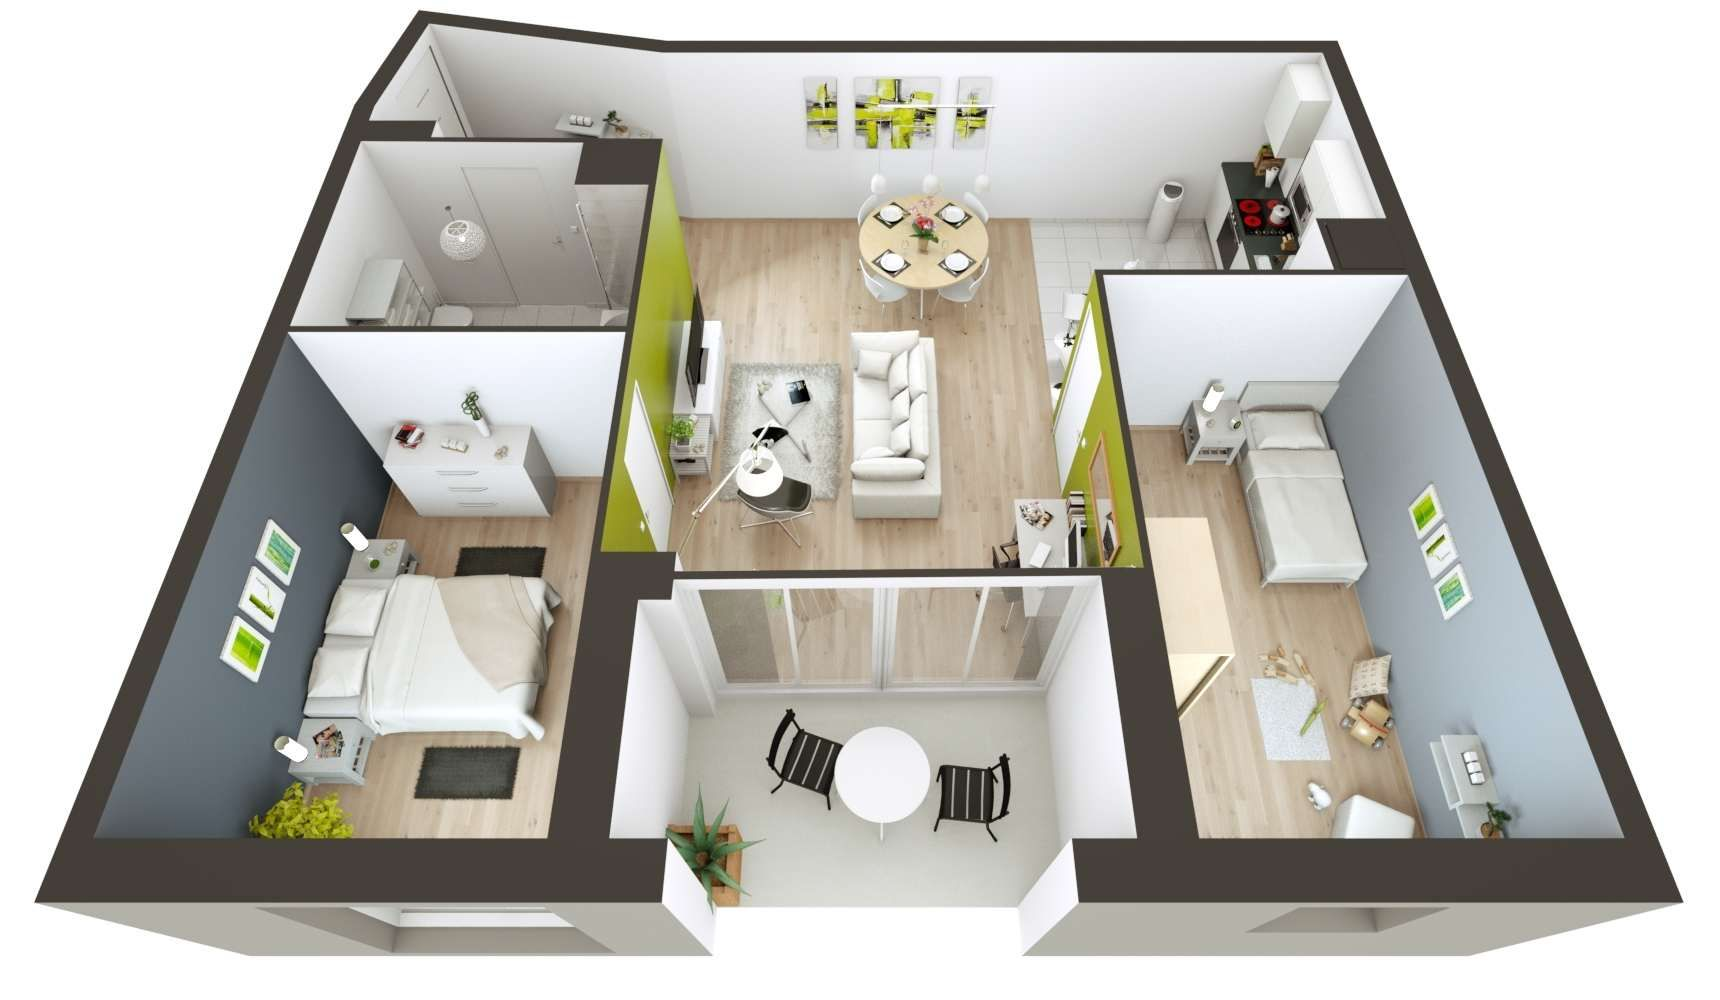 33 Awesome Plan Interieur Maison Moderne 3d Images Places